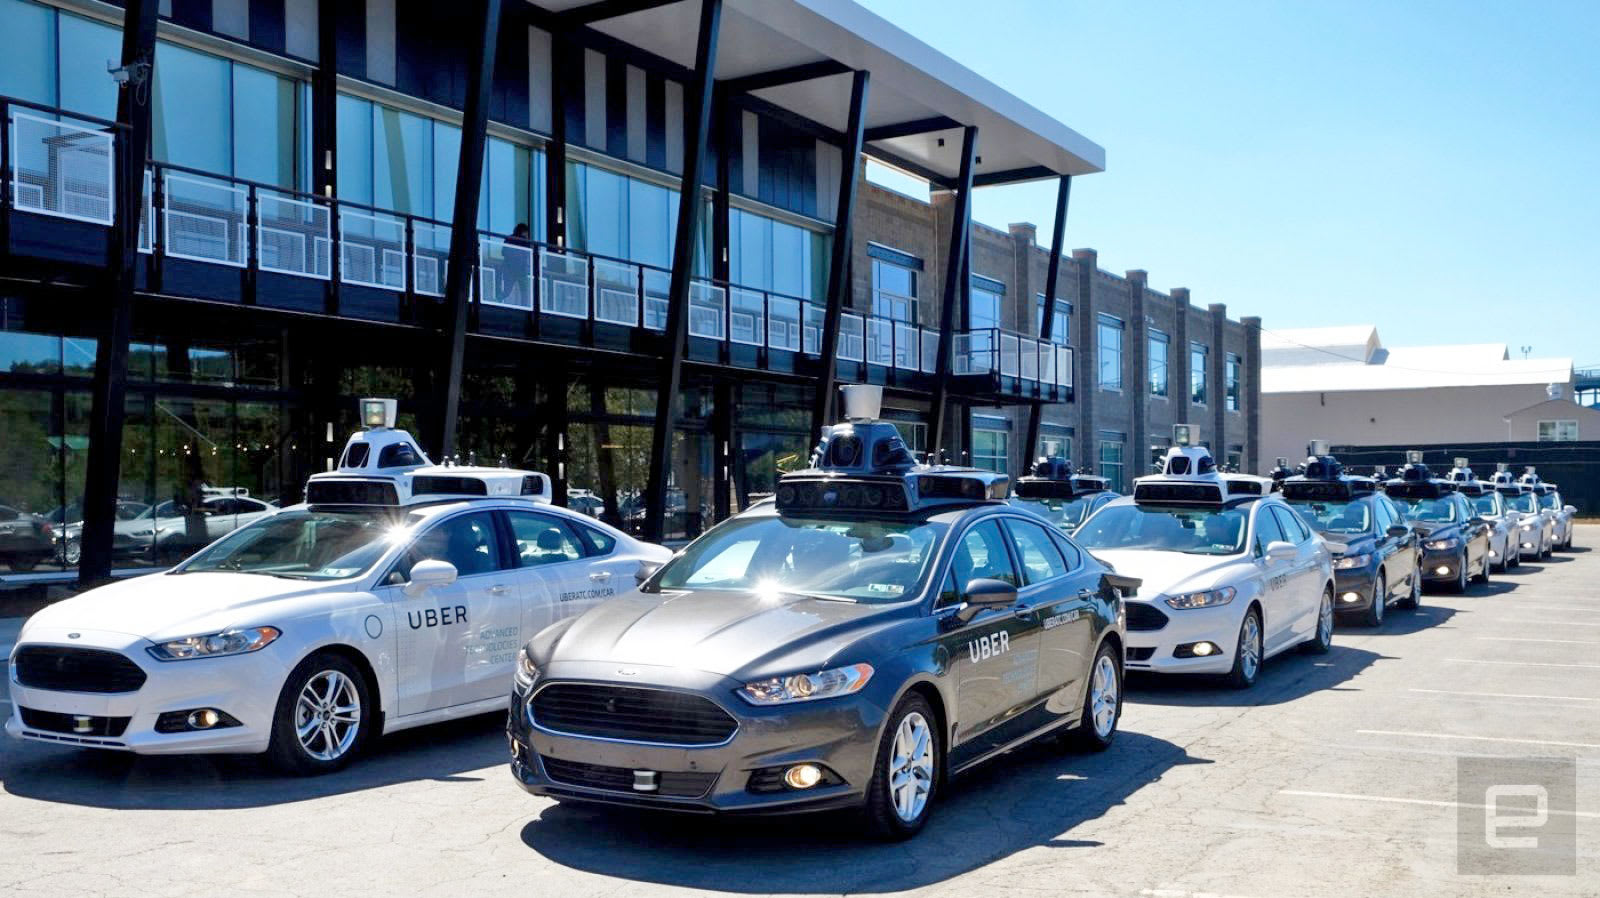 US self-driving car bill heads to the House floor